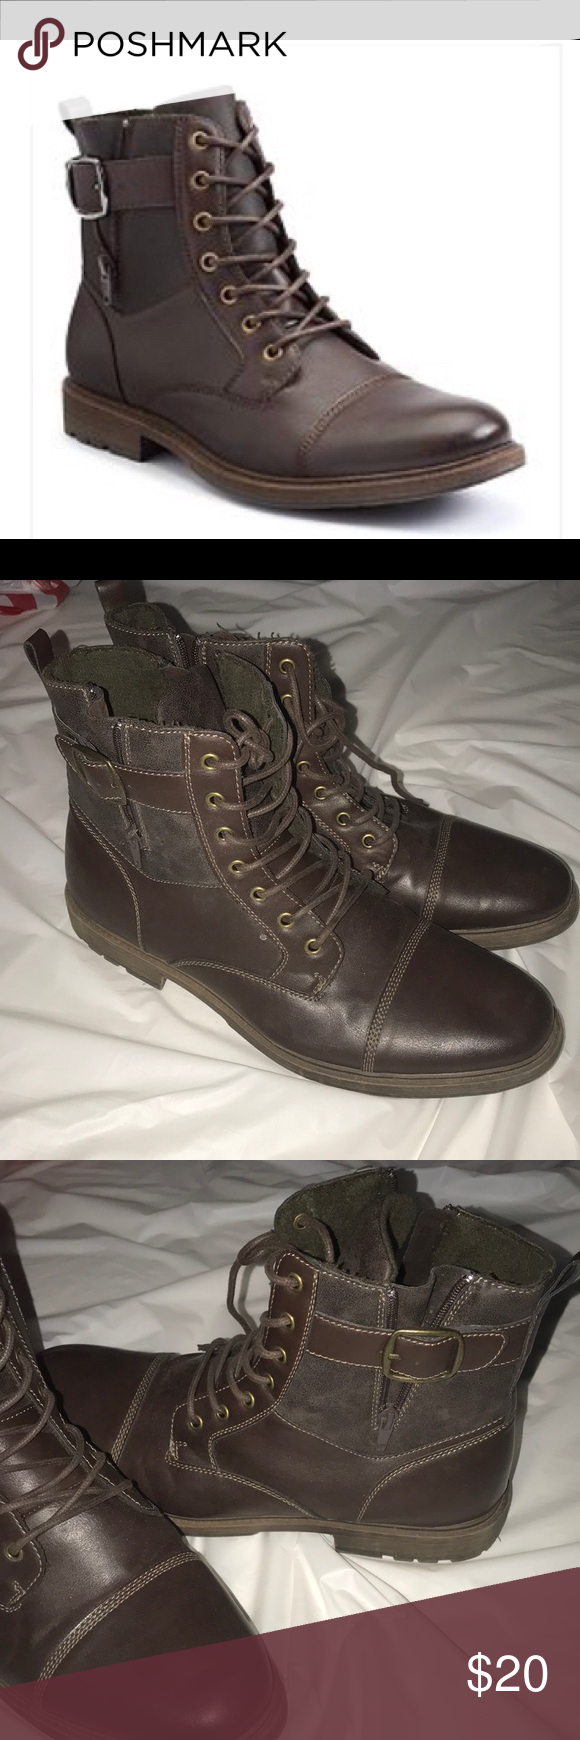 Casual boots, Boots, Brown leather boots